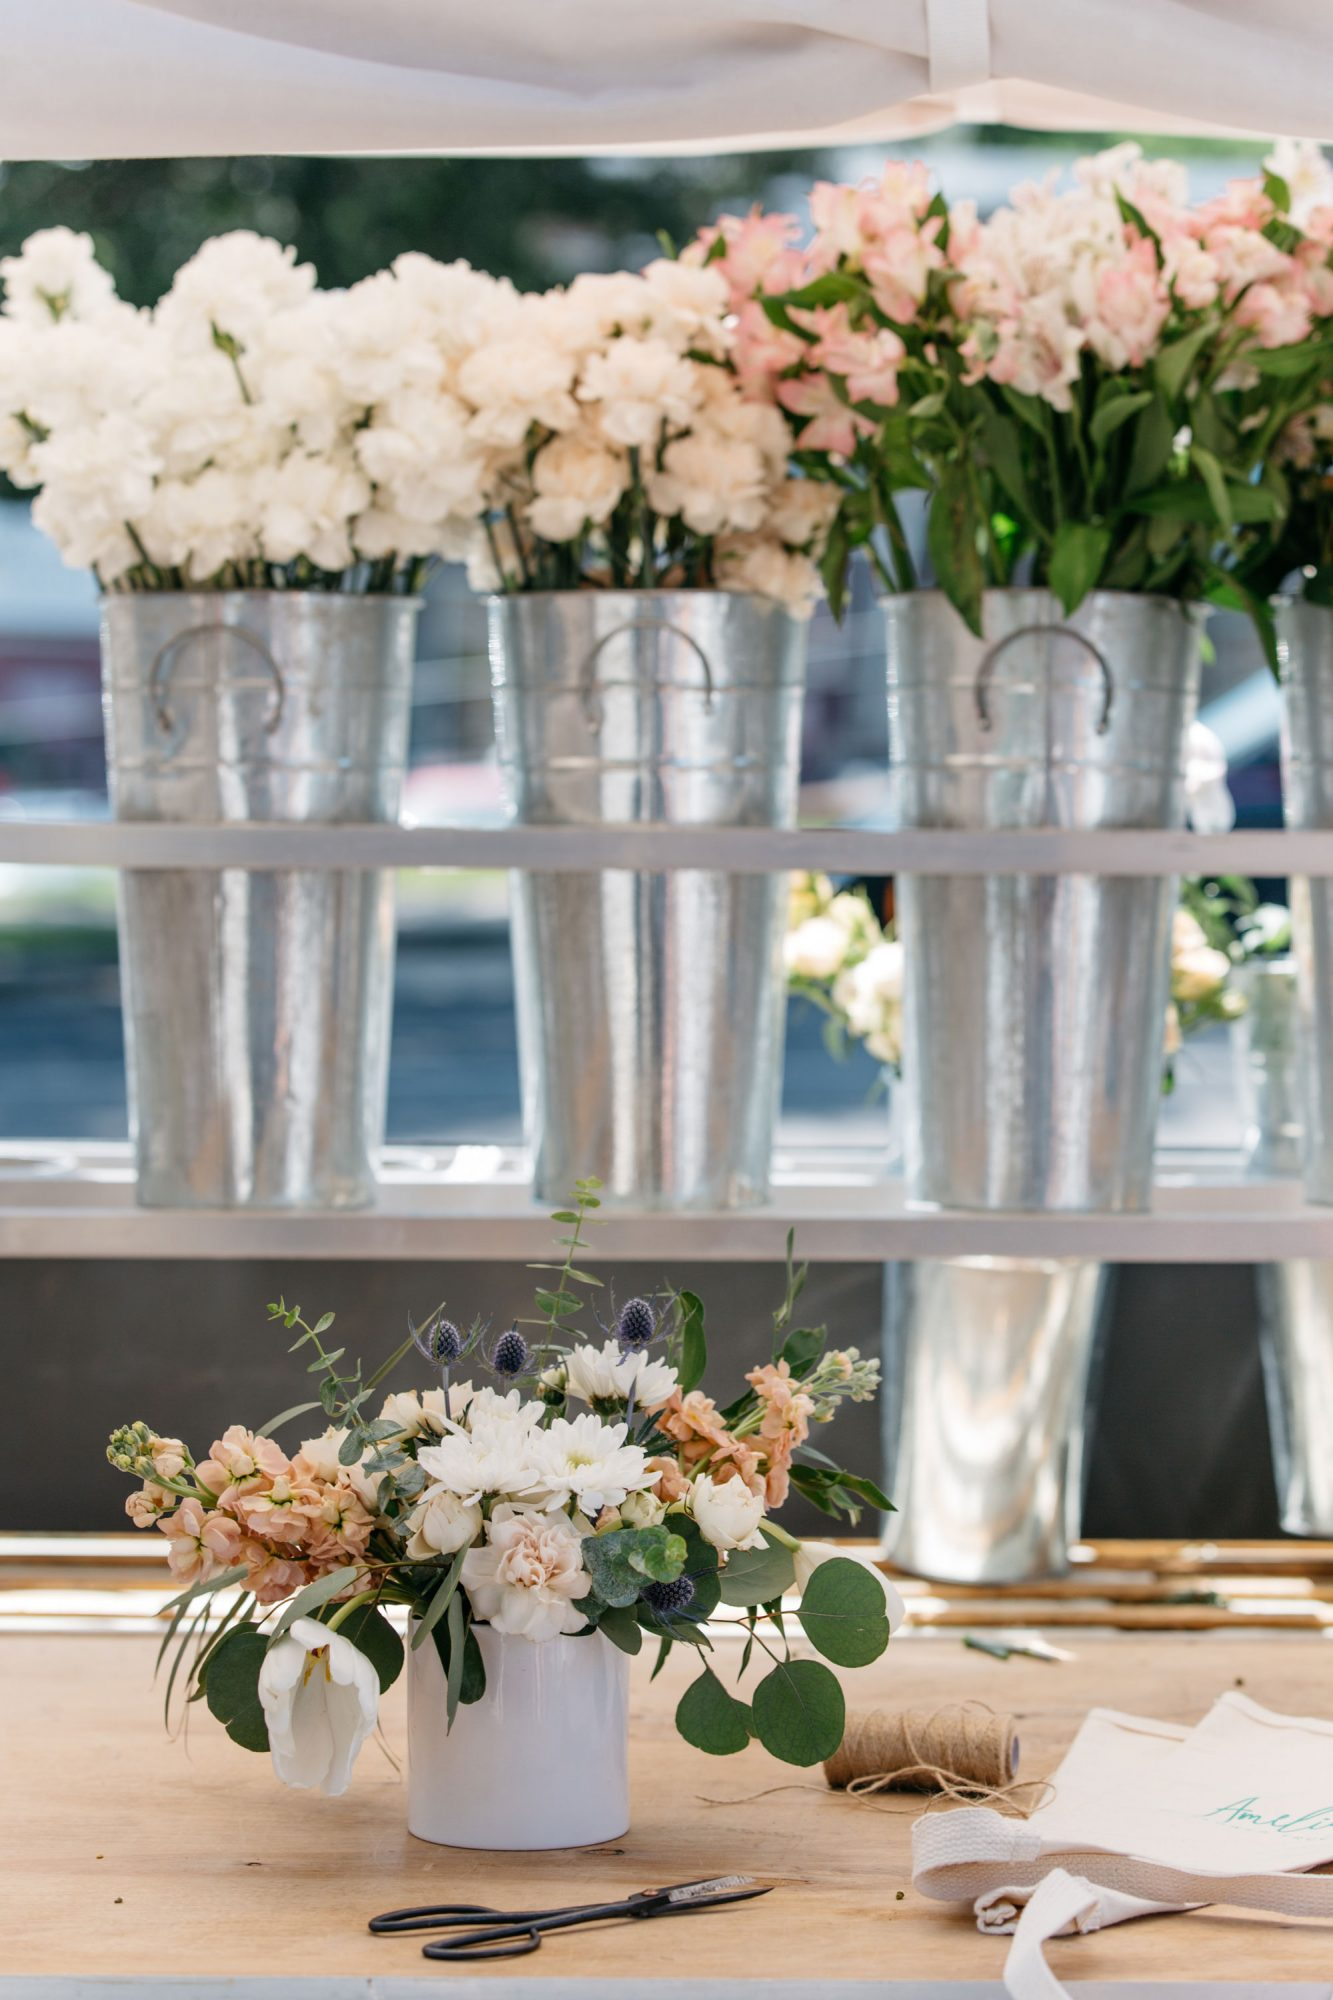 Flower arrangements from fresh flowers - an original decor for any holiday 56